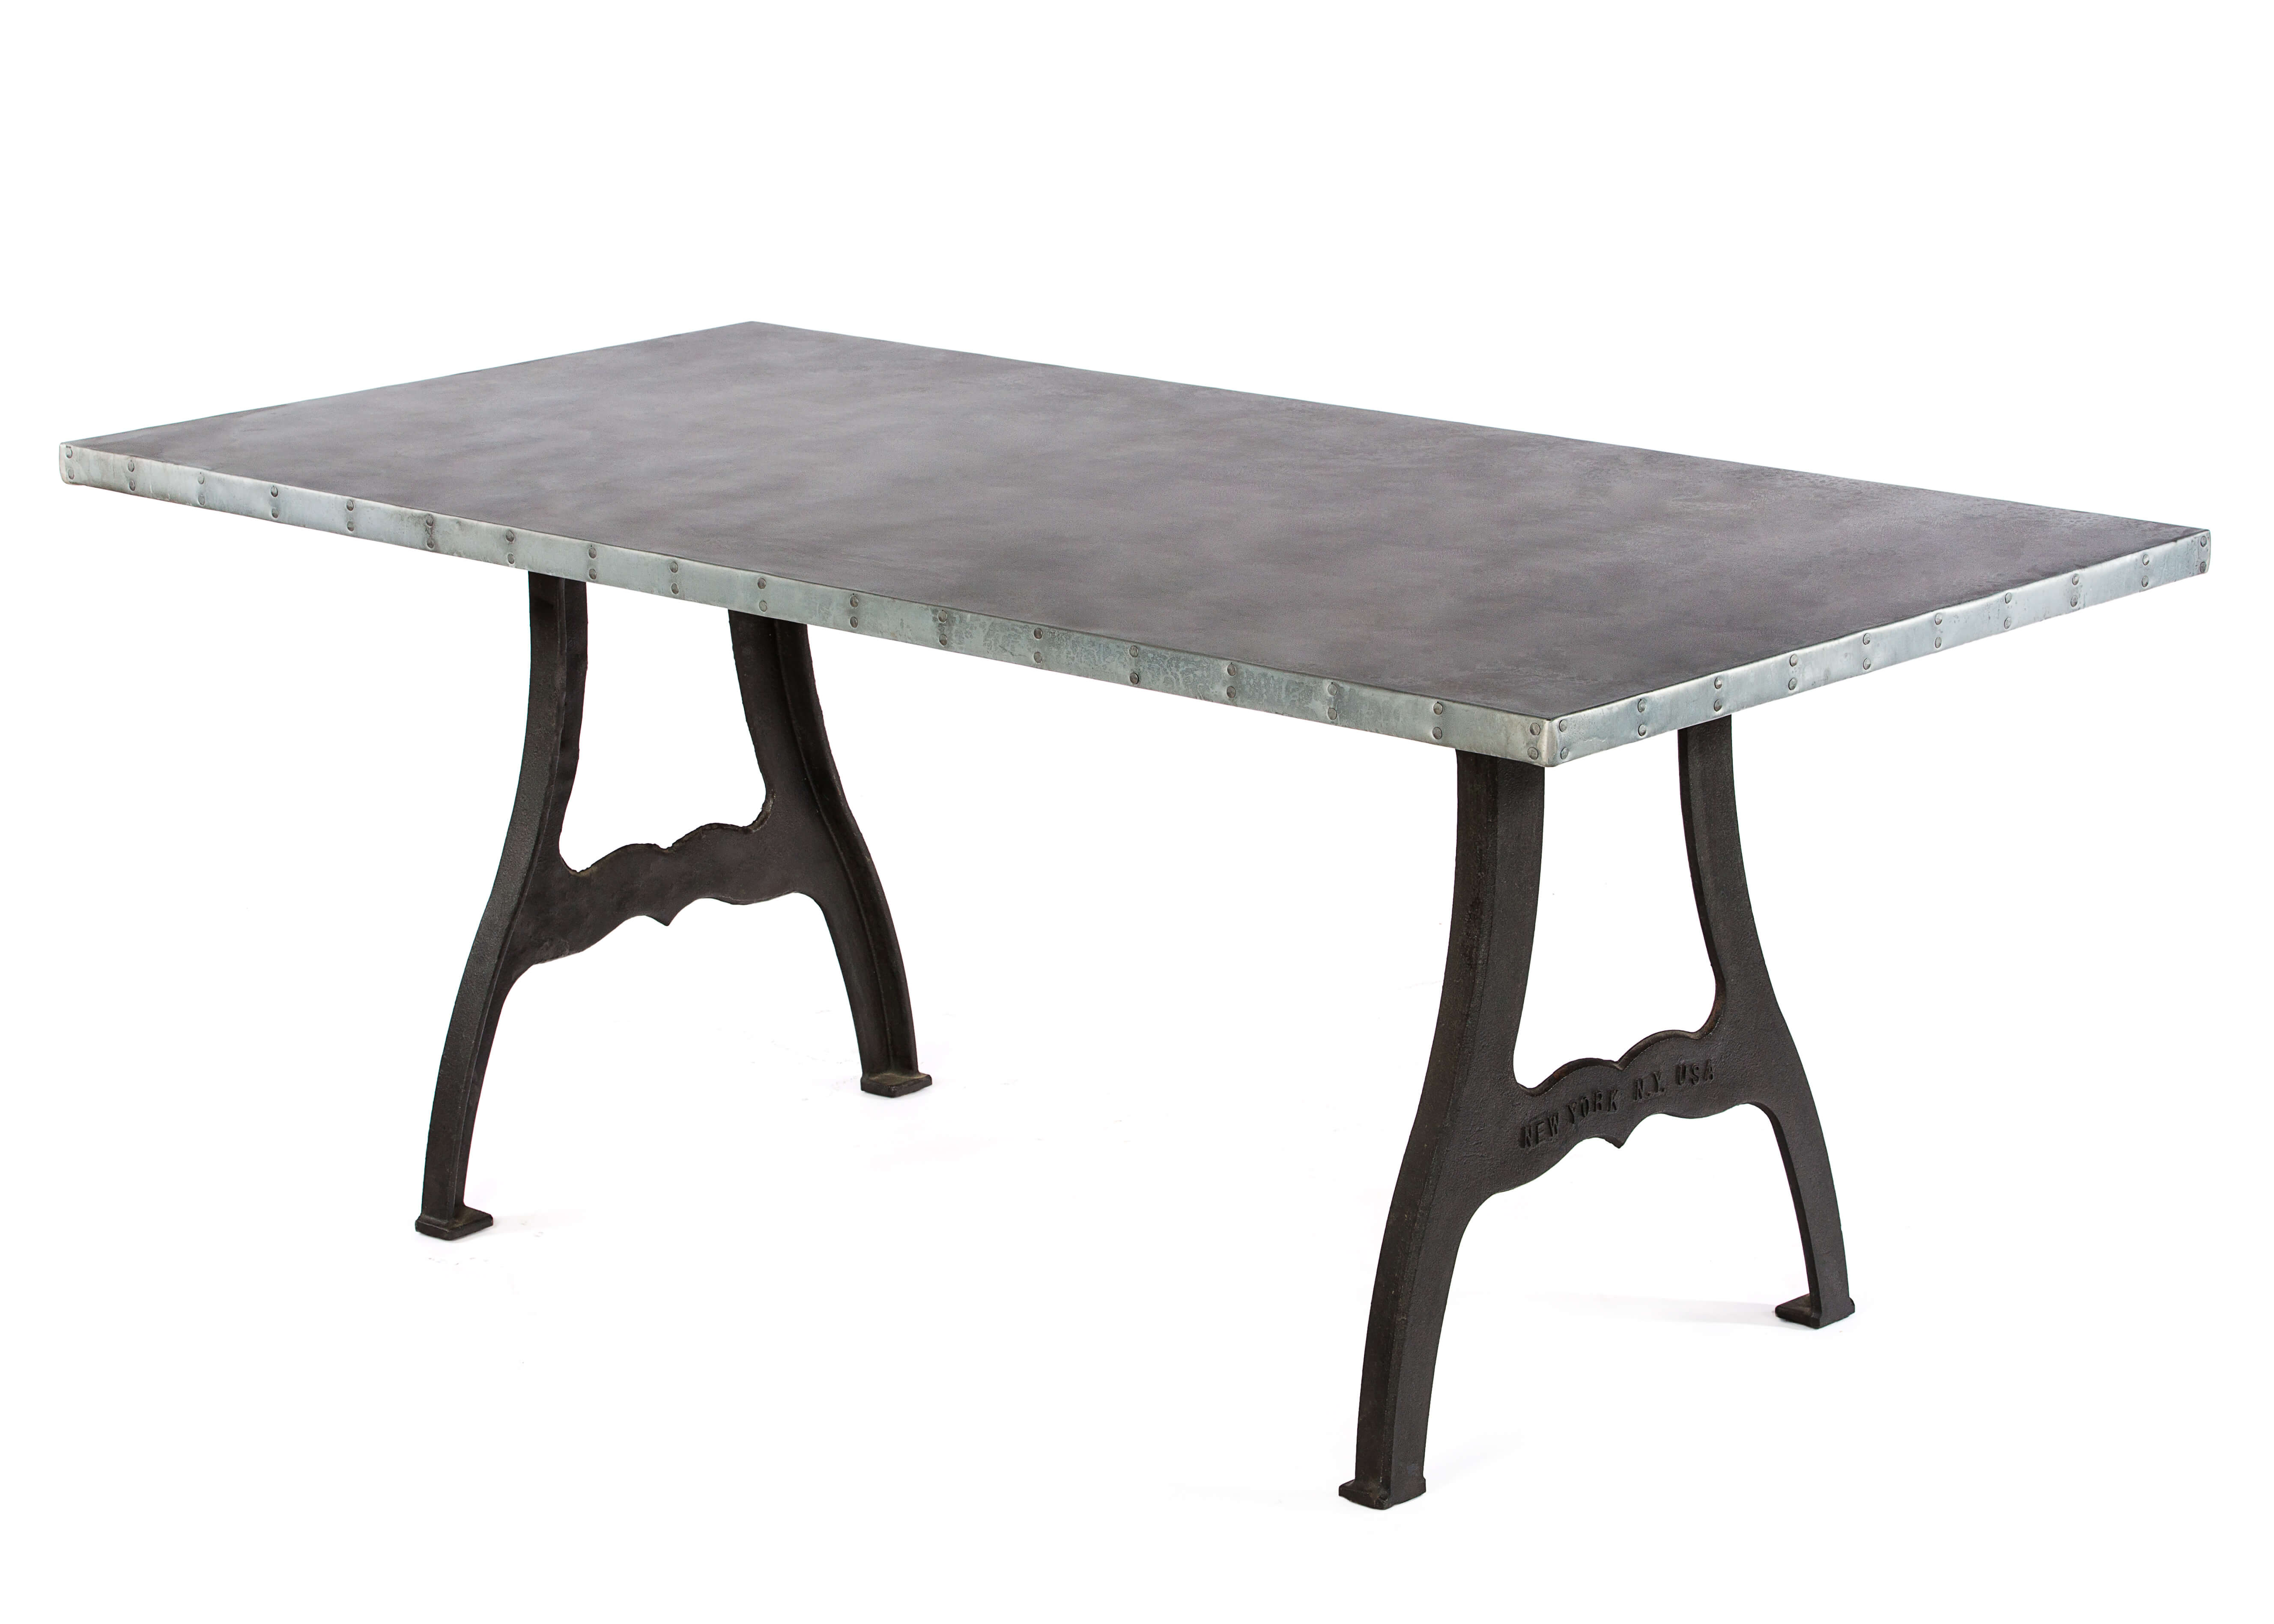 "Zinc Rectangular Table | Williamsburg Table | CLASSIC | Natural Iron | CUSTOM SIZE 66""L 37""W 30""H 